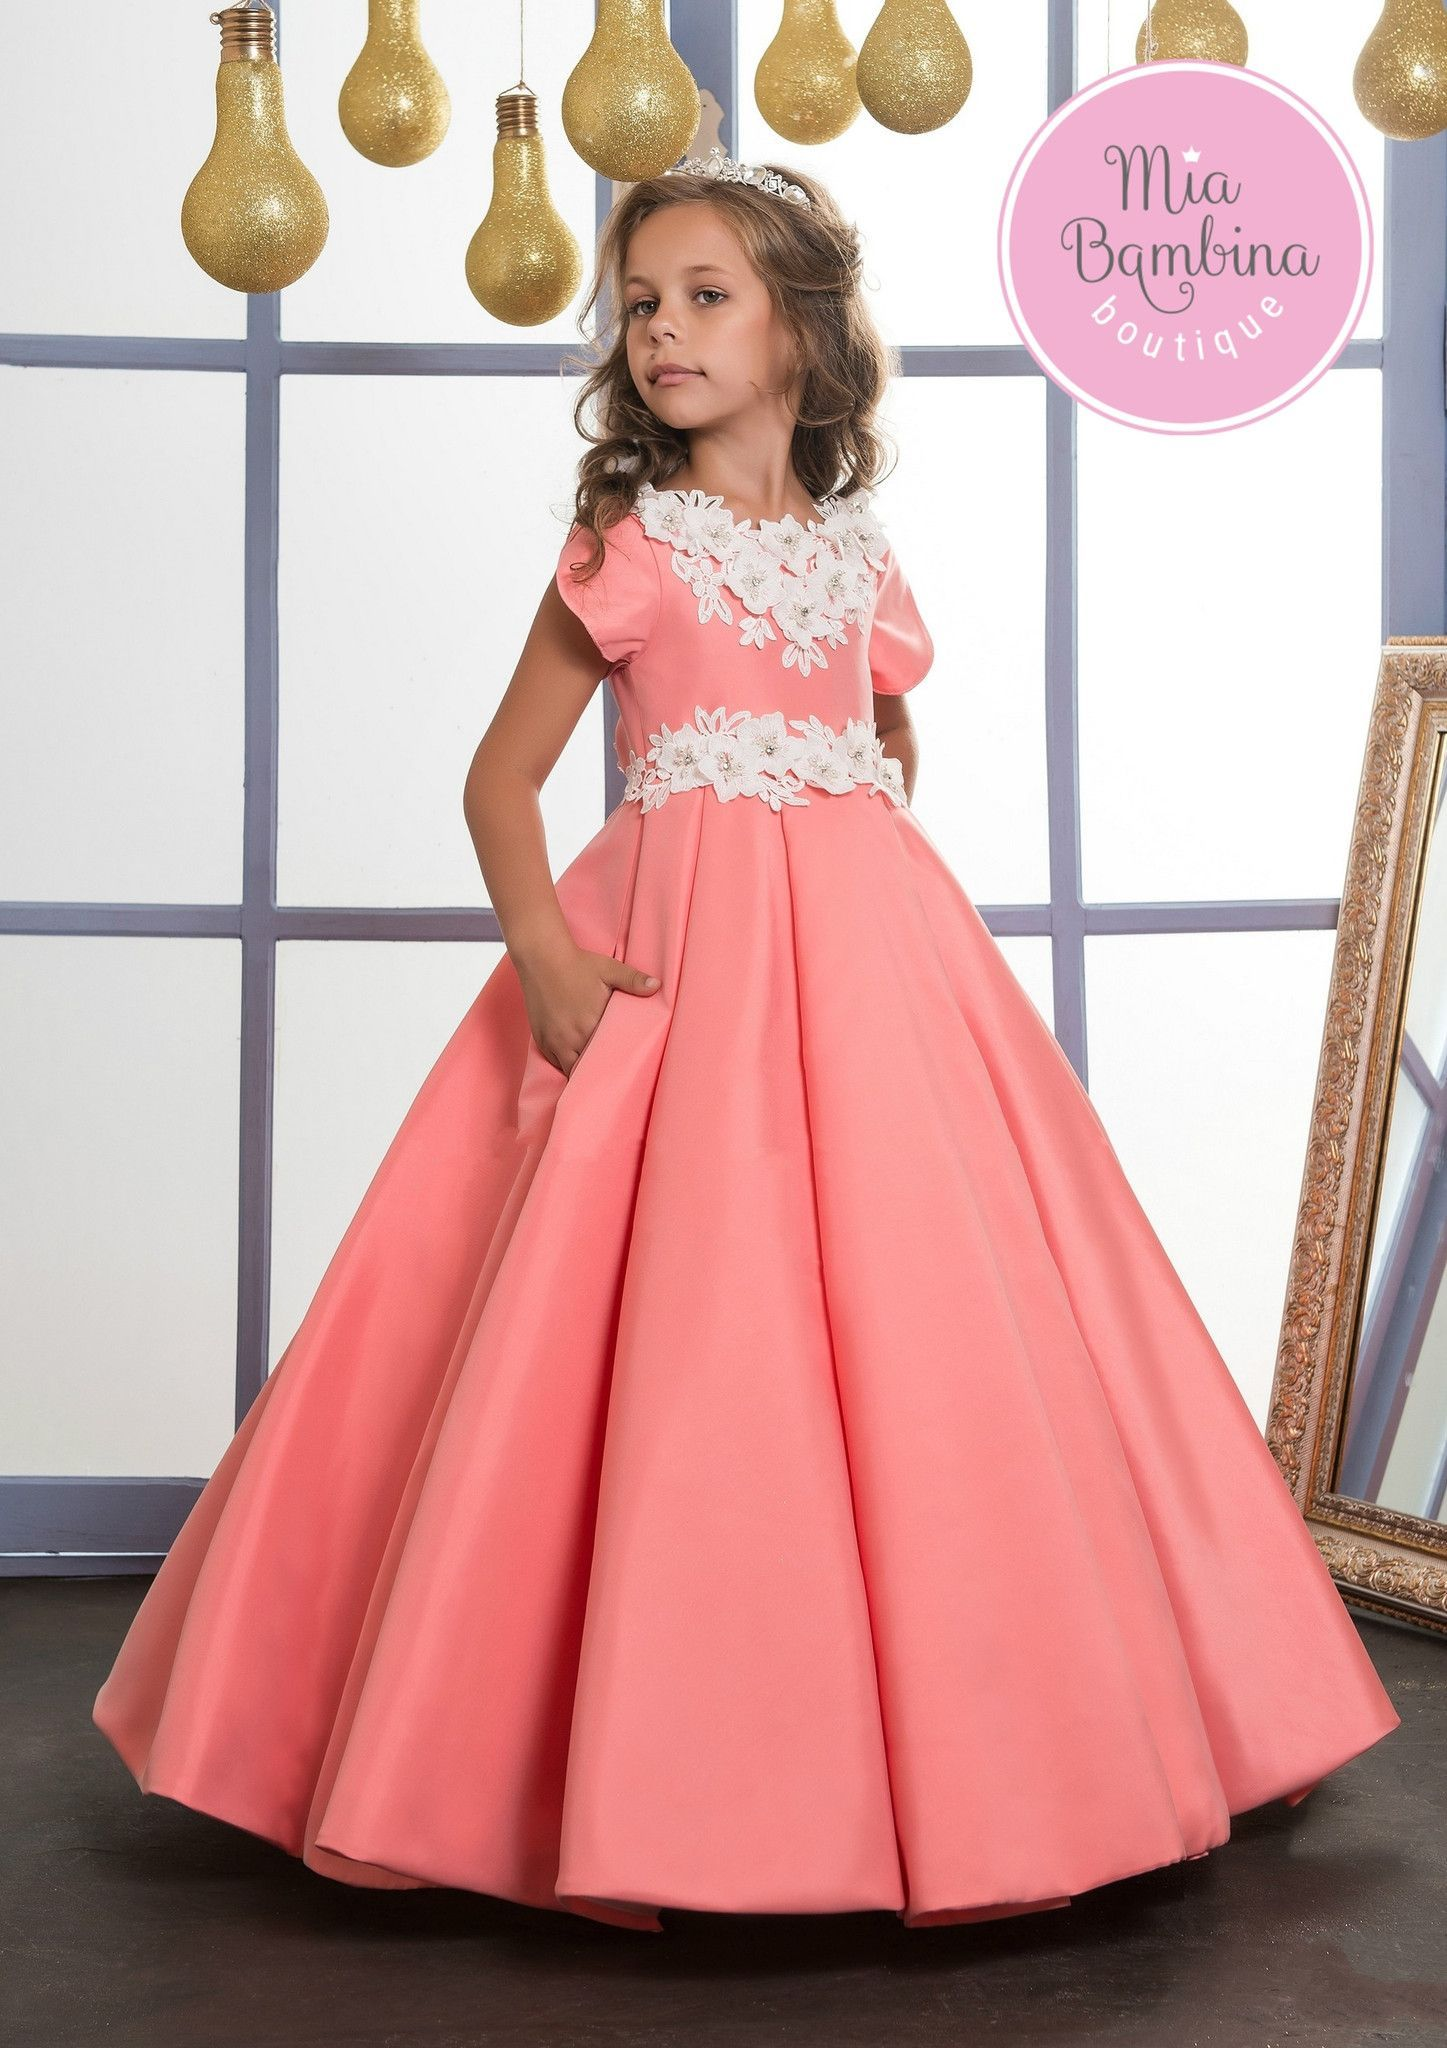 2714fdade ... party dresses. What could be more refreshing for spring than this  bright, solid colour flower girl dress with short sleeves and an elegant  pleated skirt ...